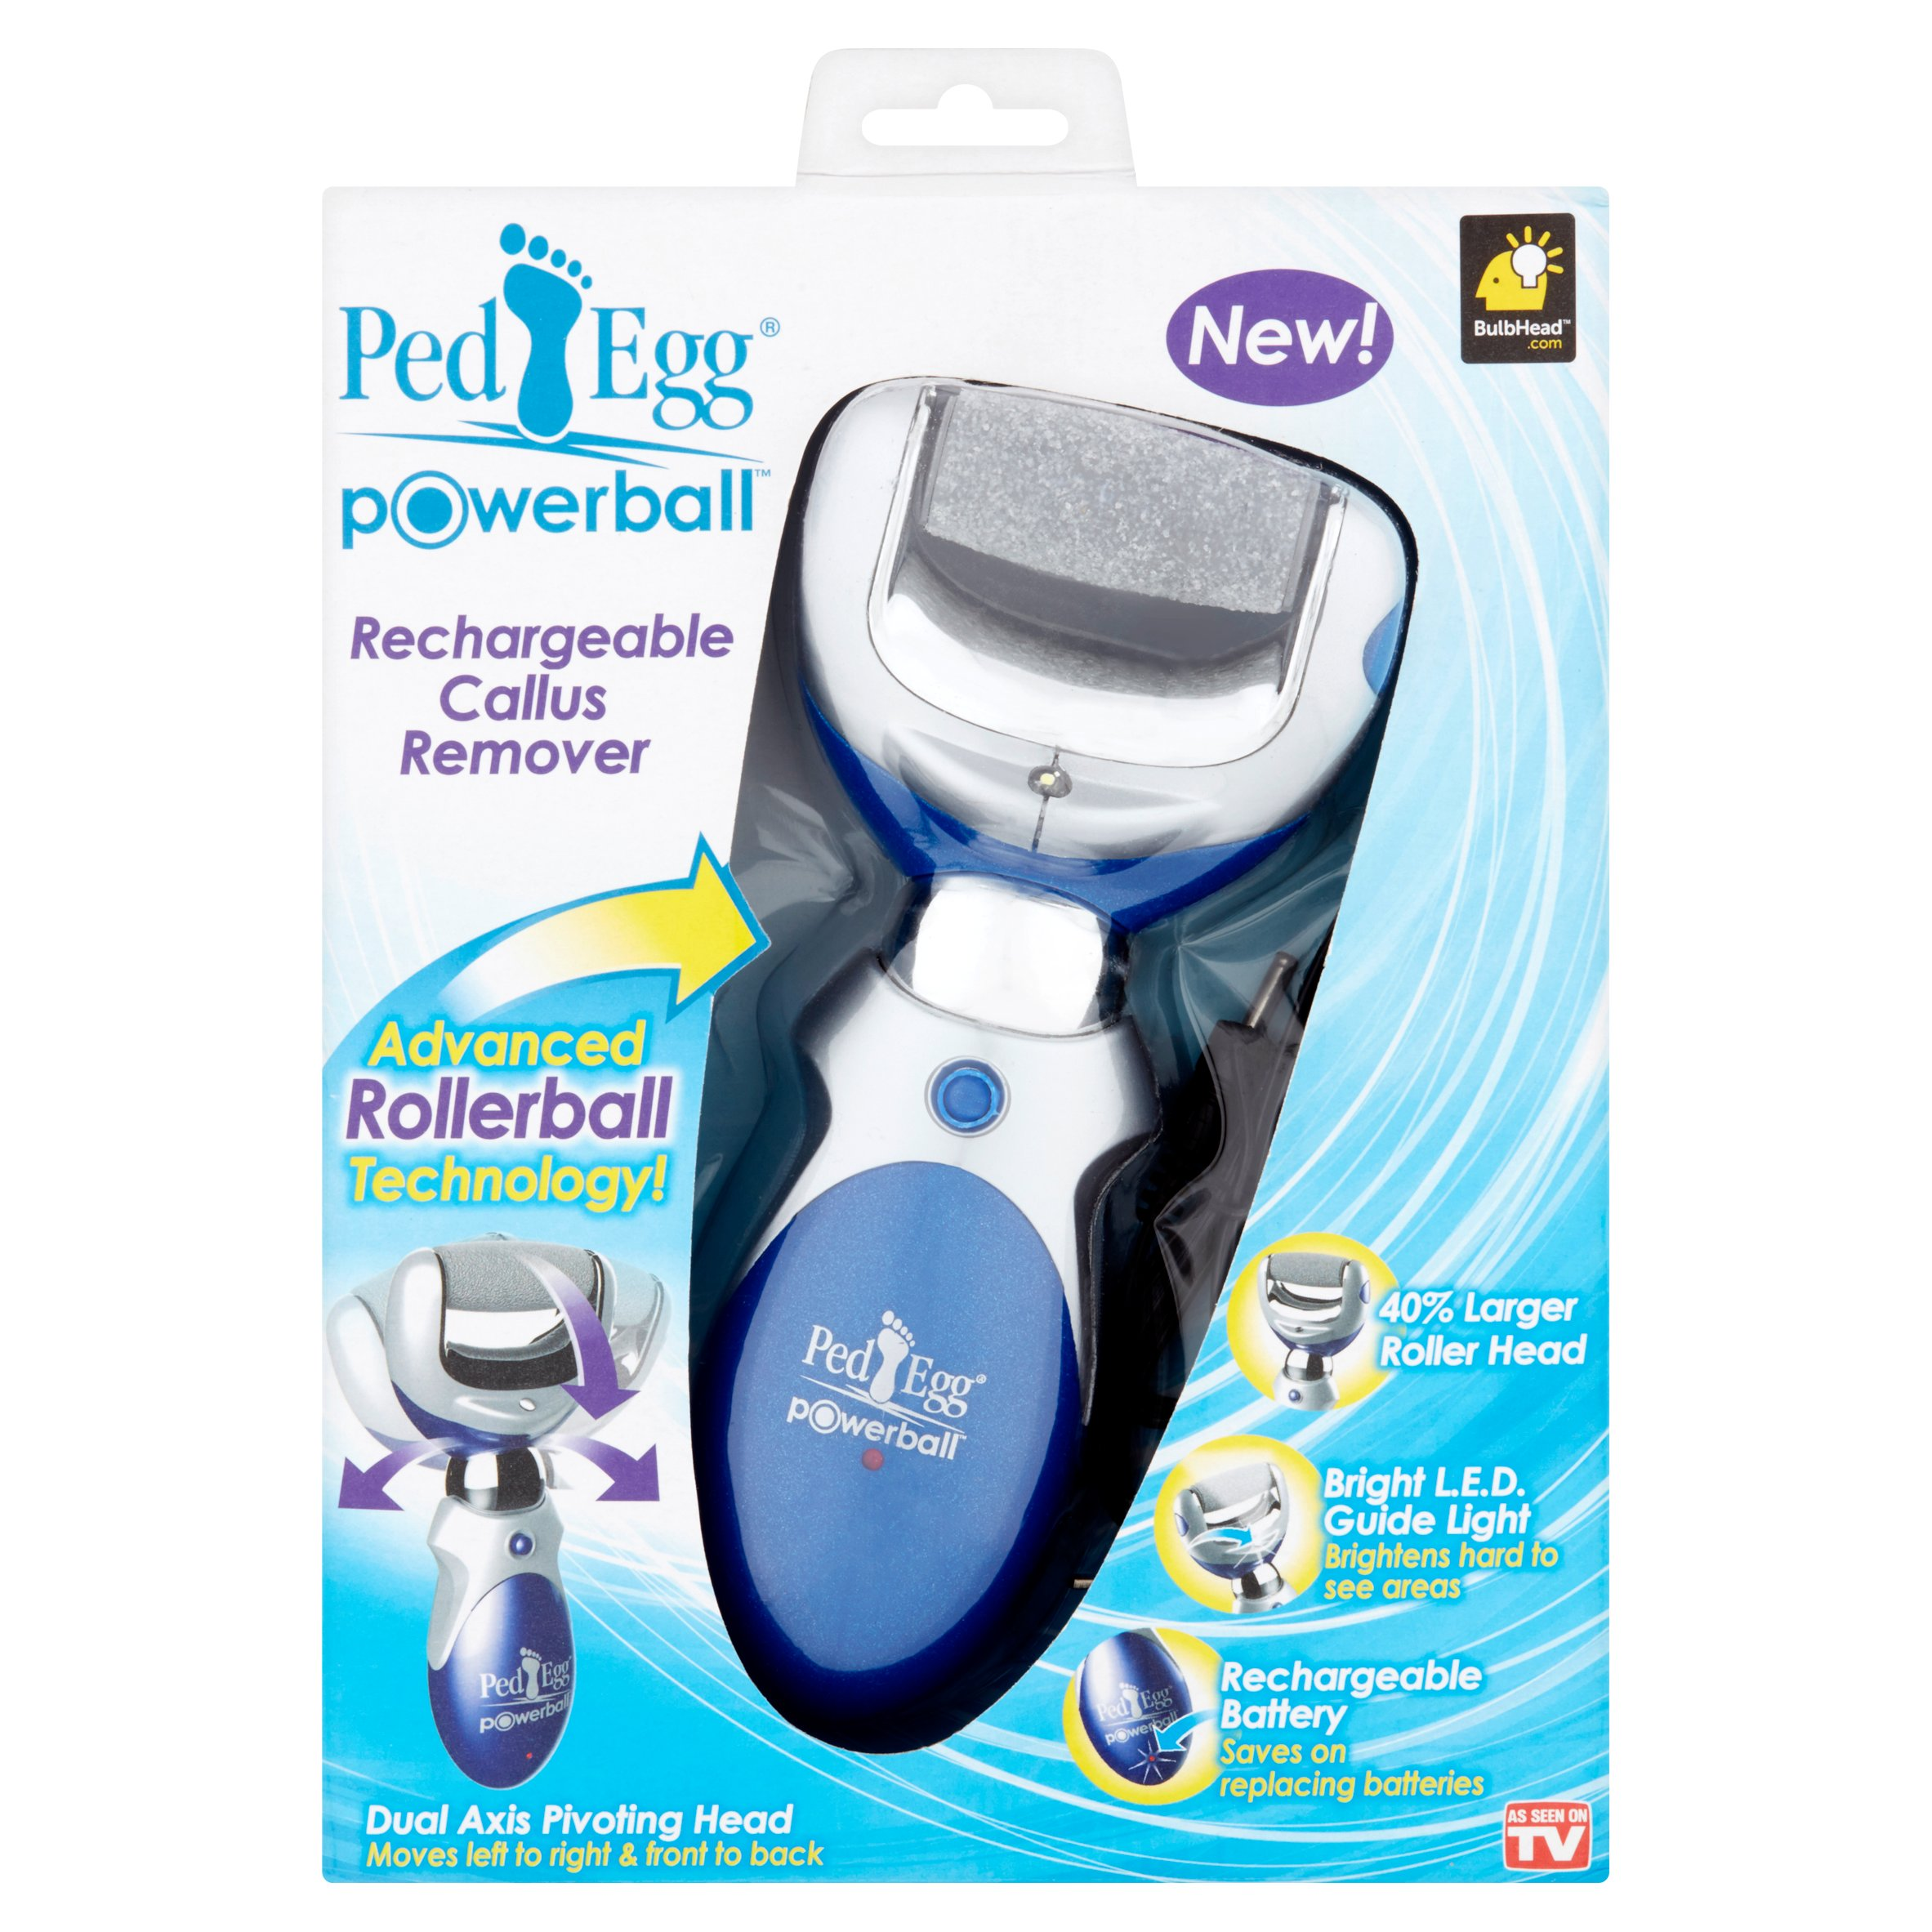 As Seen on TV Ped Egg Powerball Rechargeable Callus Remover